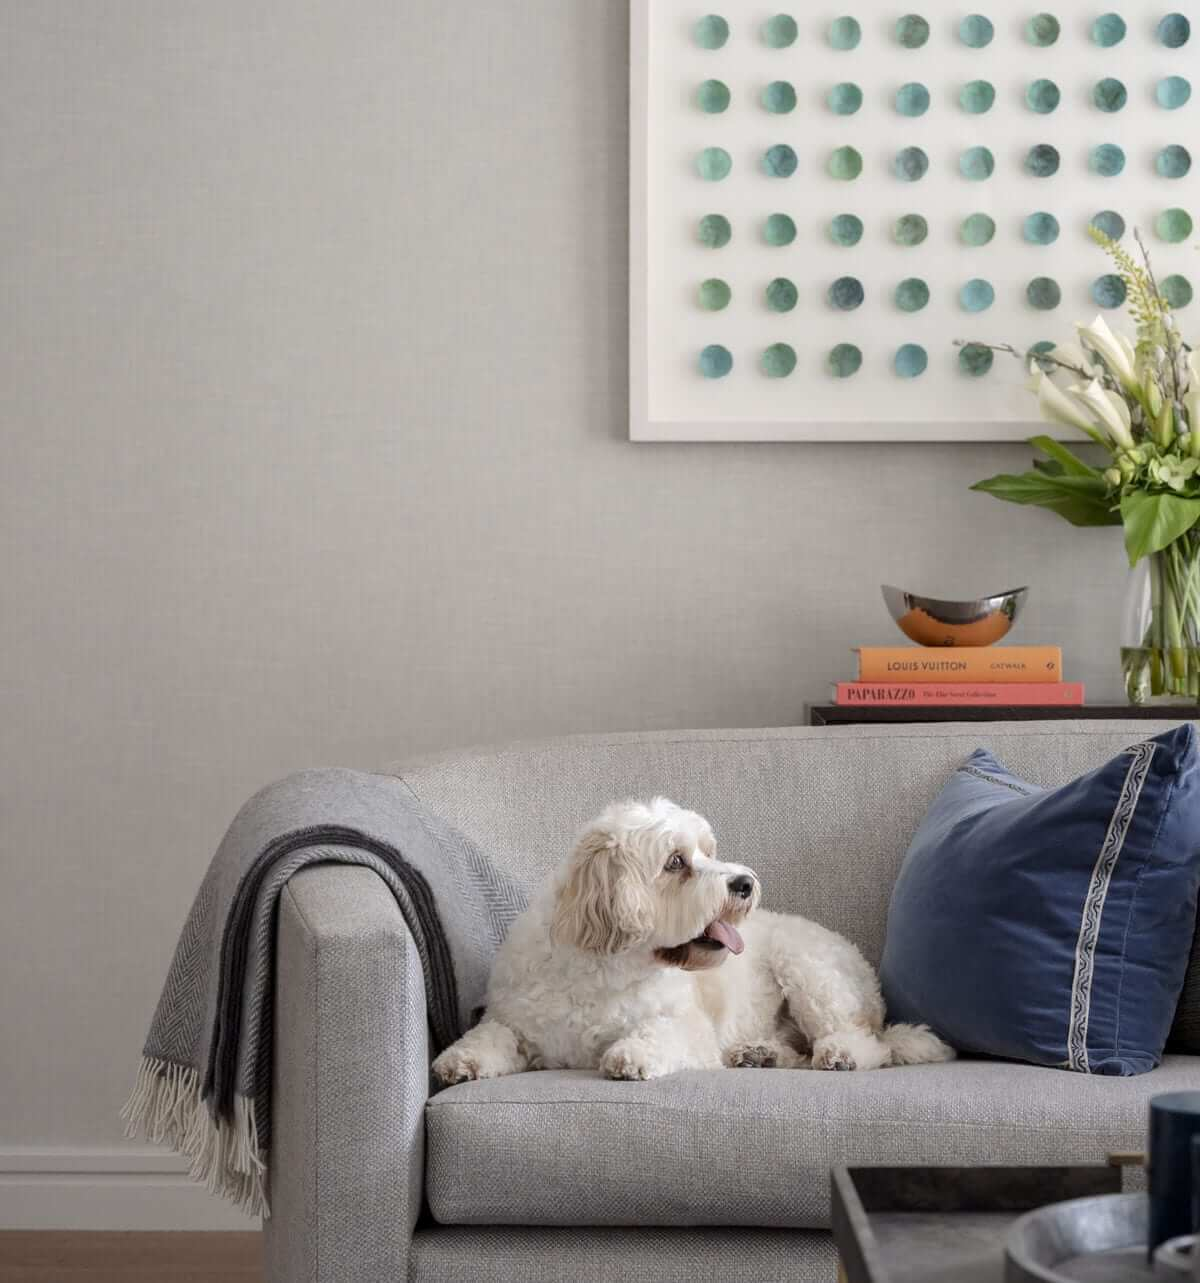 Lansdowne Place | Dog on couch 2B unit